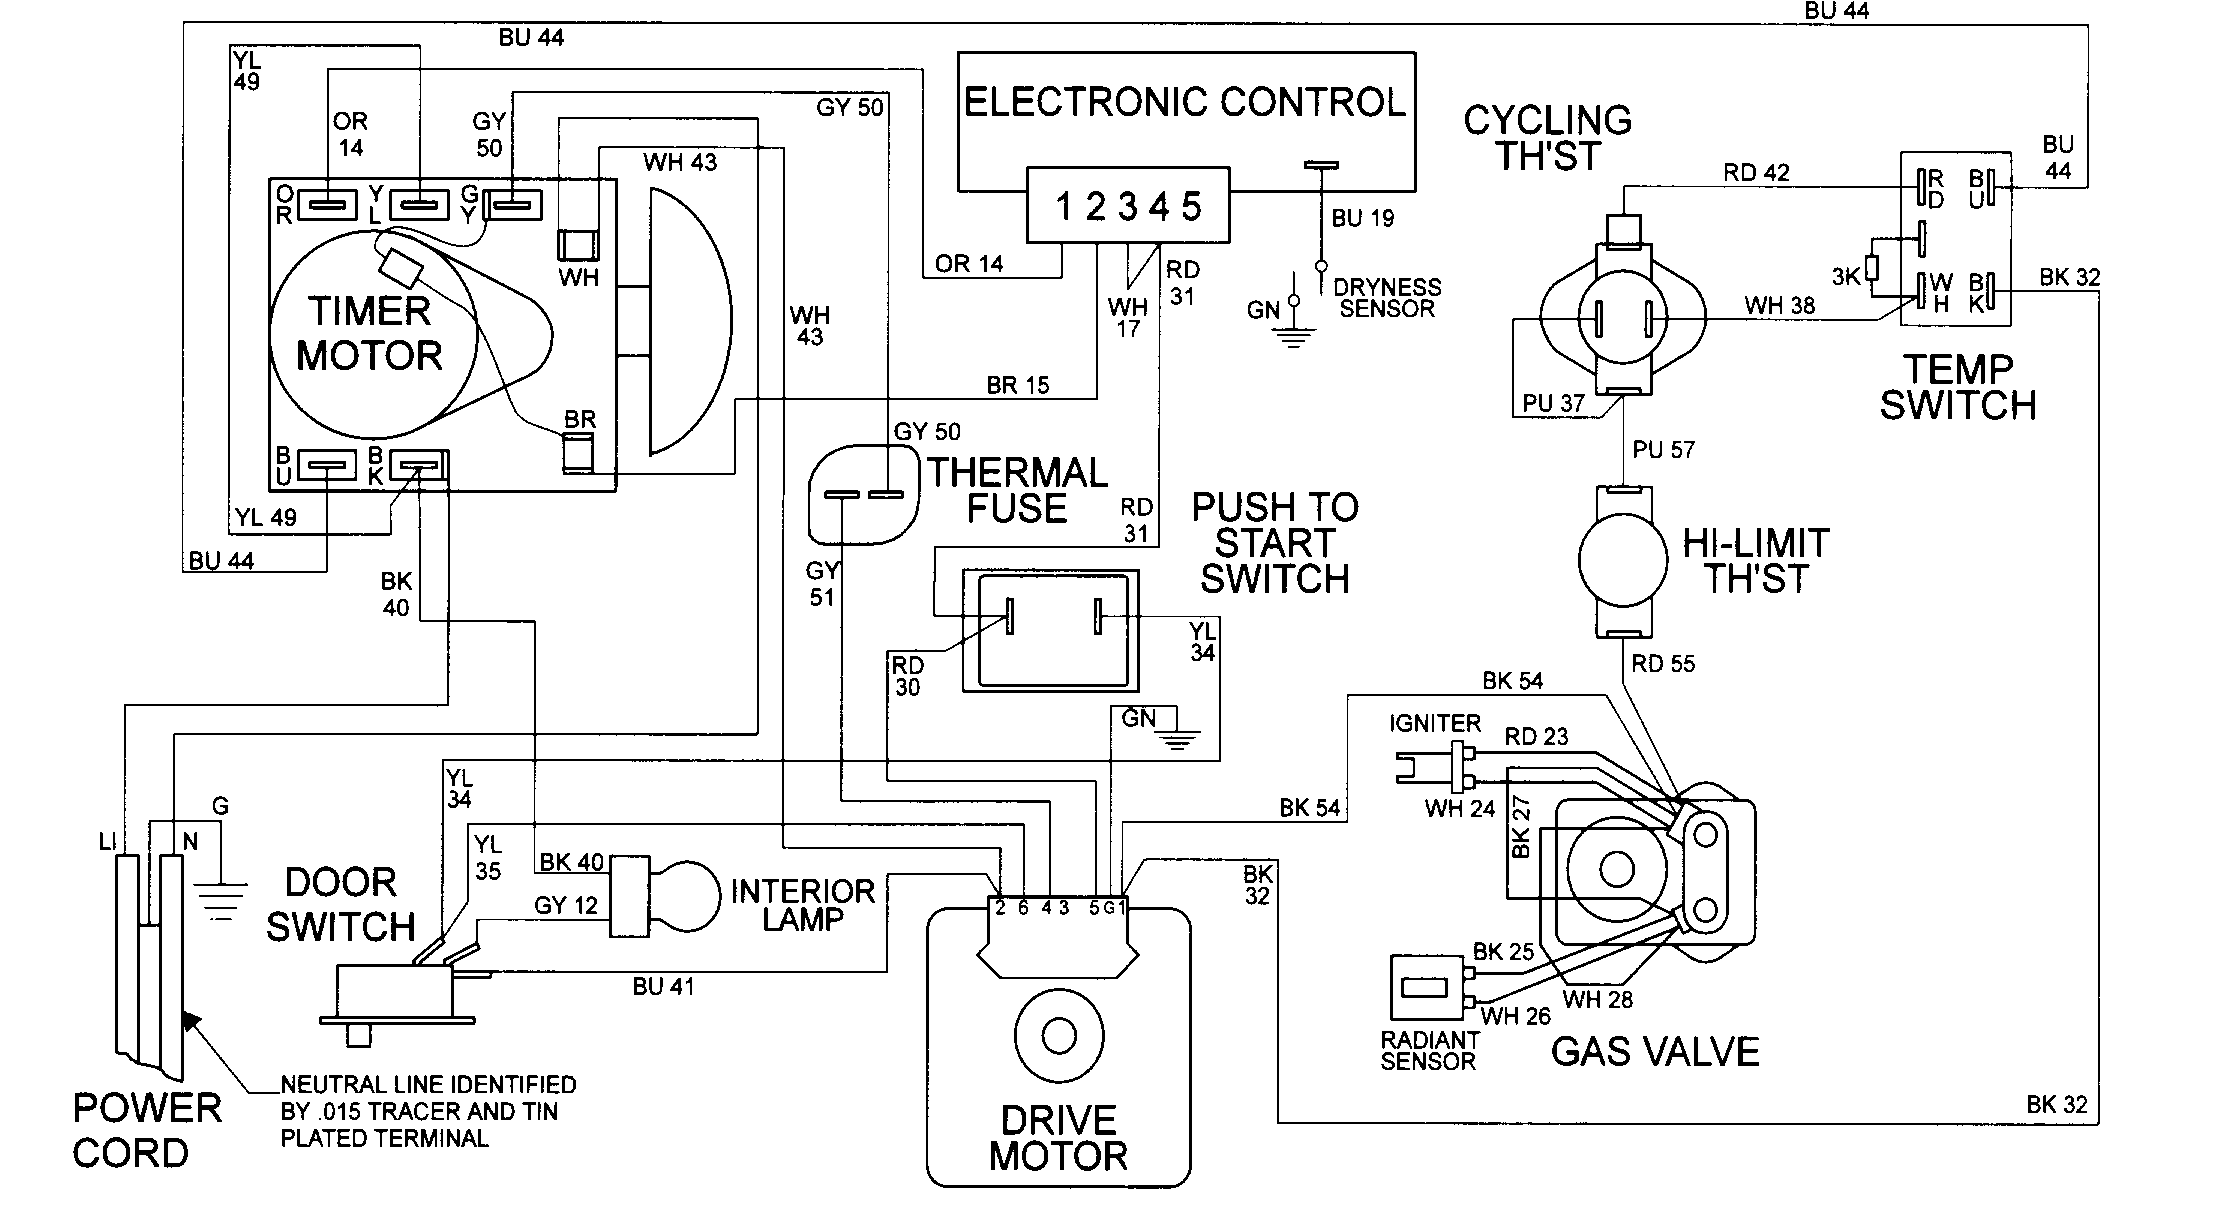 collection maytag dryer wiring schematic pictures wiring diagram Maytag Washer Parts Diagram Maytag Dryer Cord Diagram maytag centennial dryer wiring diagram